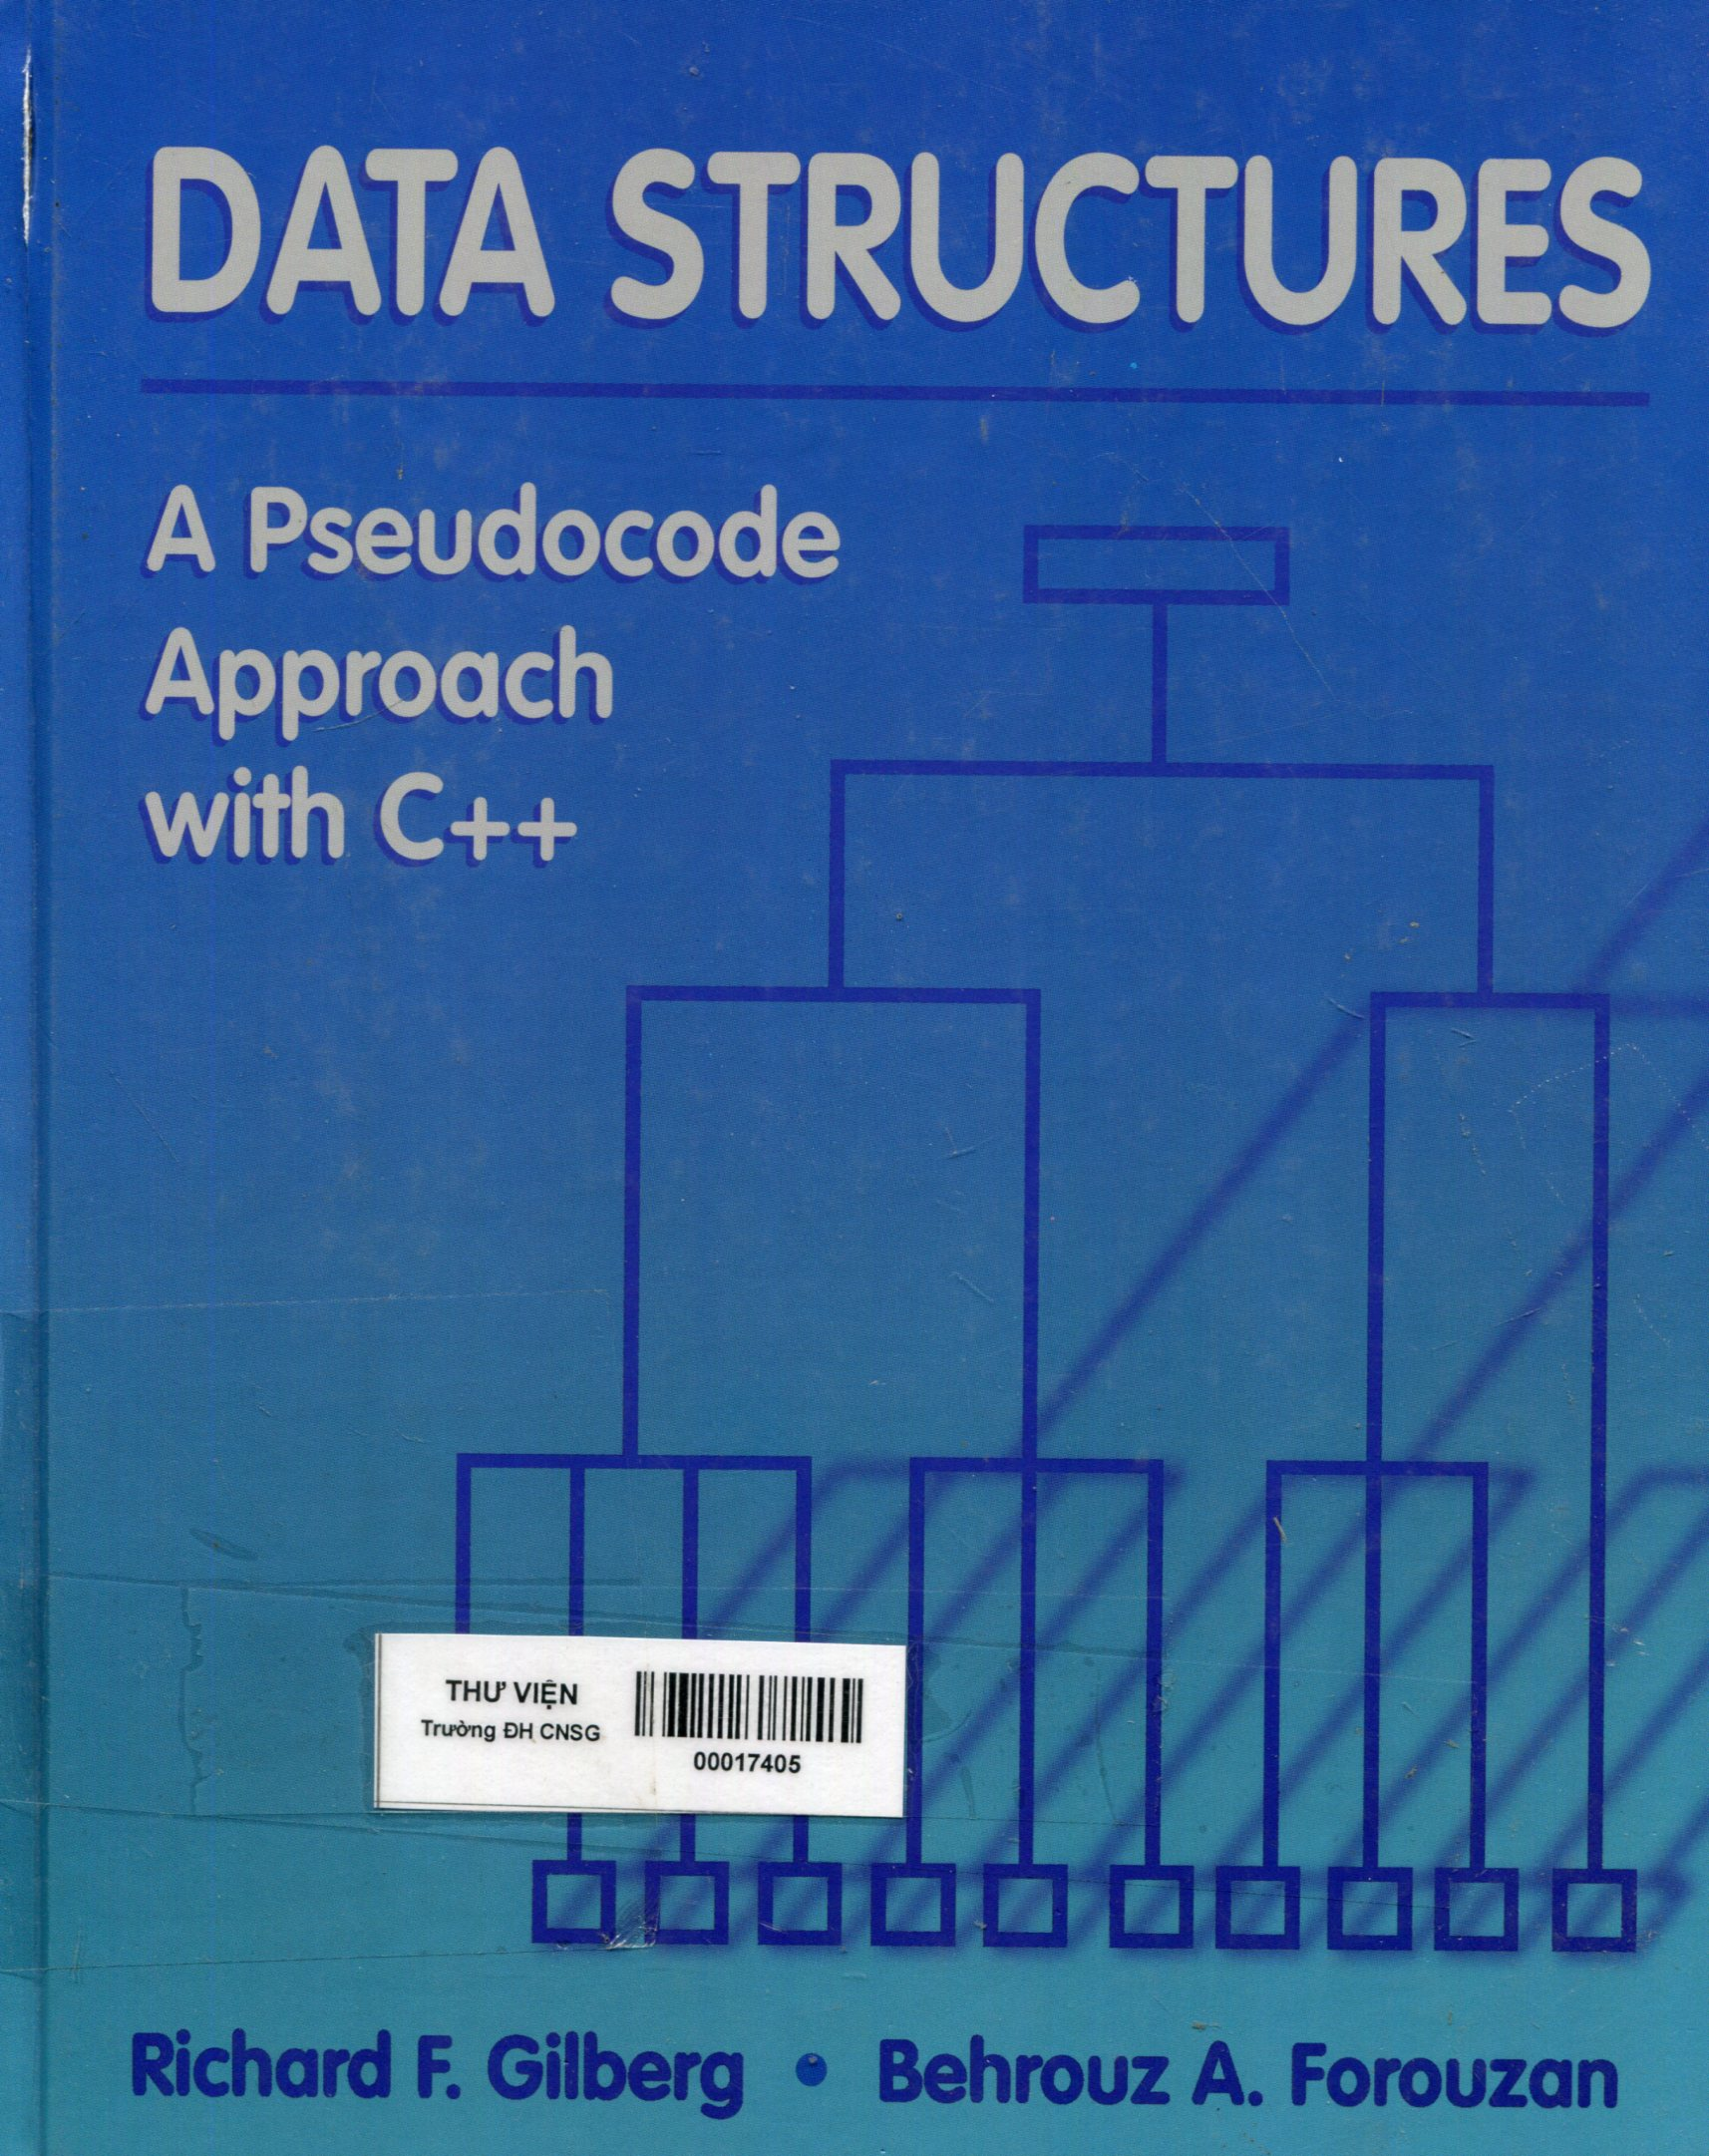 Data structures : a pseudocode approach with C++